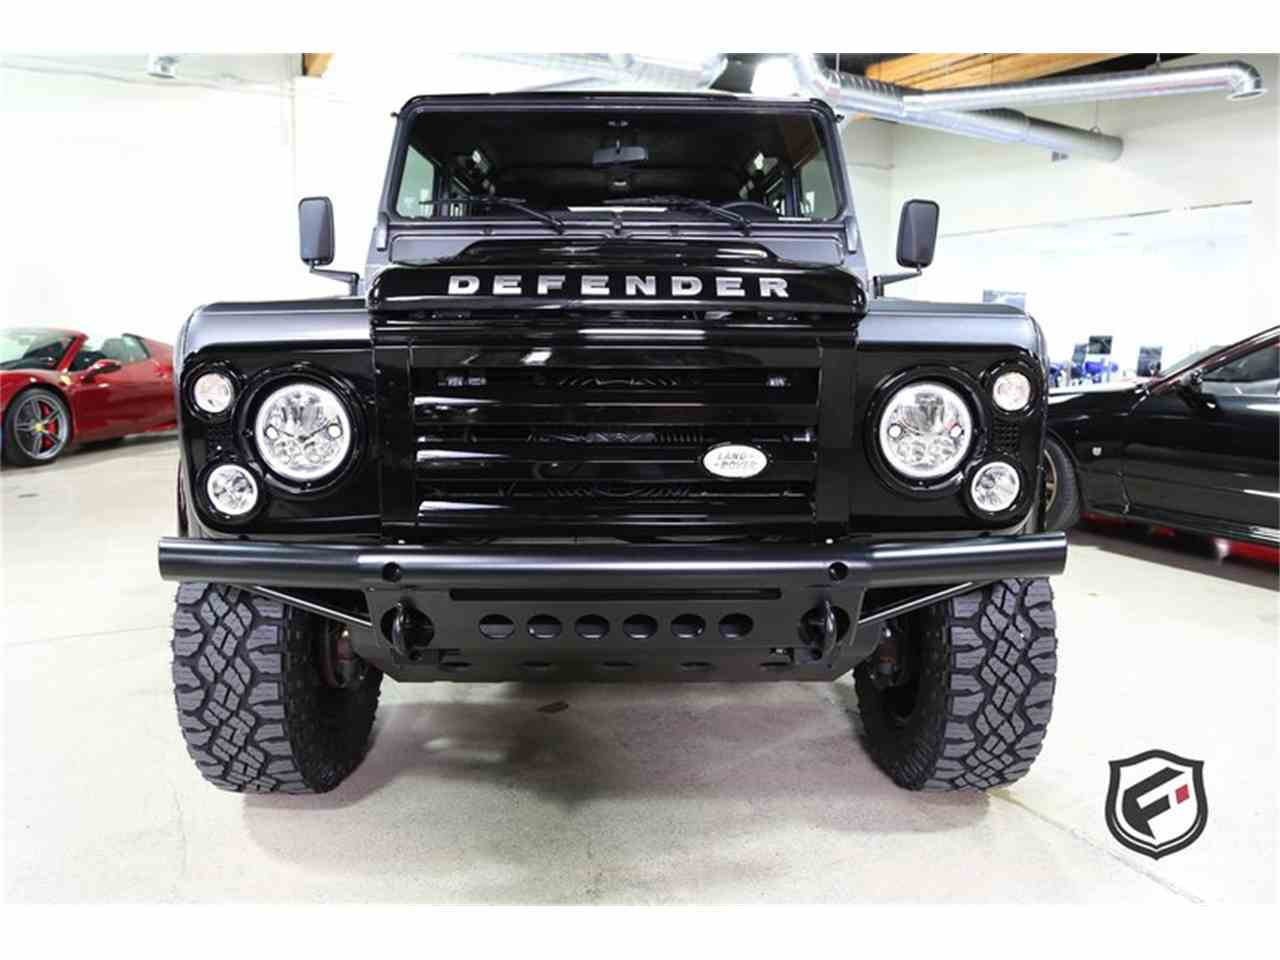 Large Picture of 1994 Defender Offered by Fusion Luxury Motors - JSI7